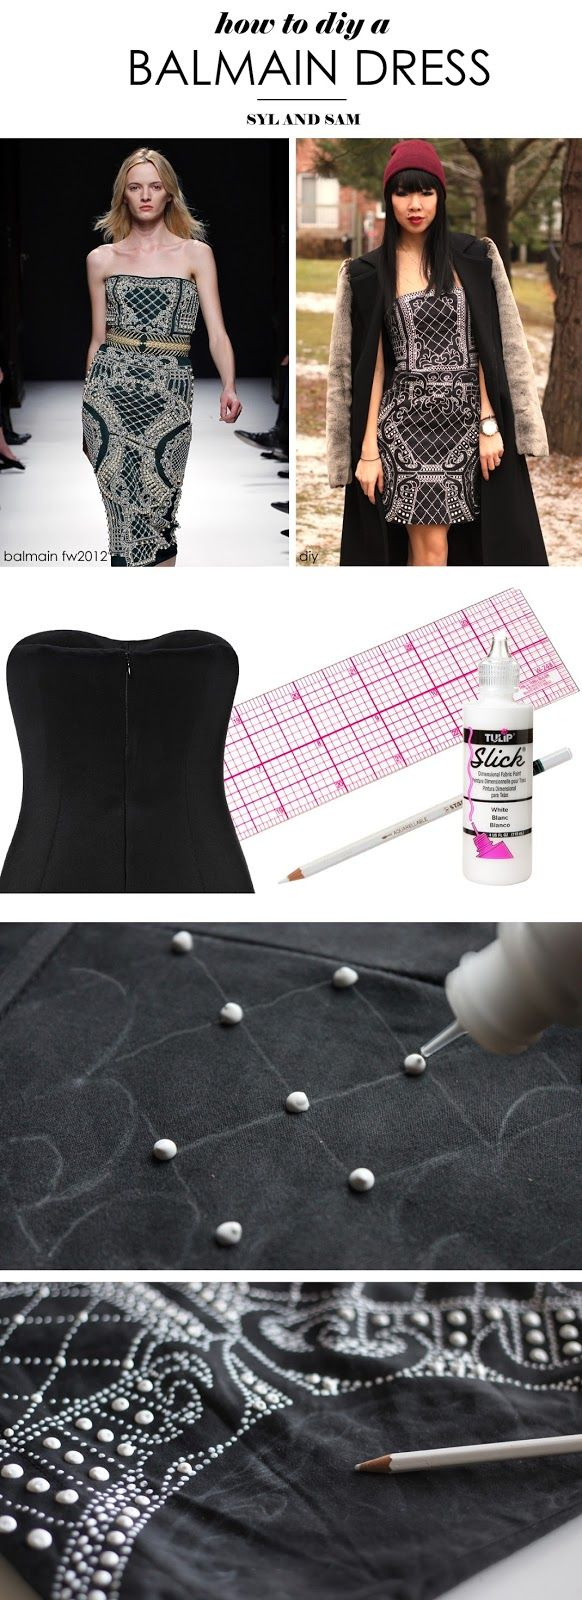 Missed out on Balmain x H&M? If you've got the patience, try out this tutorial for a DIY Balmain Beaded Dress with dimensional fabric paint. #hmbalmaination